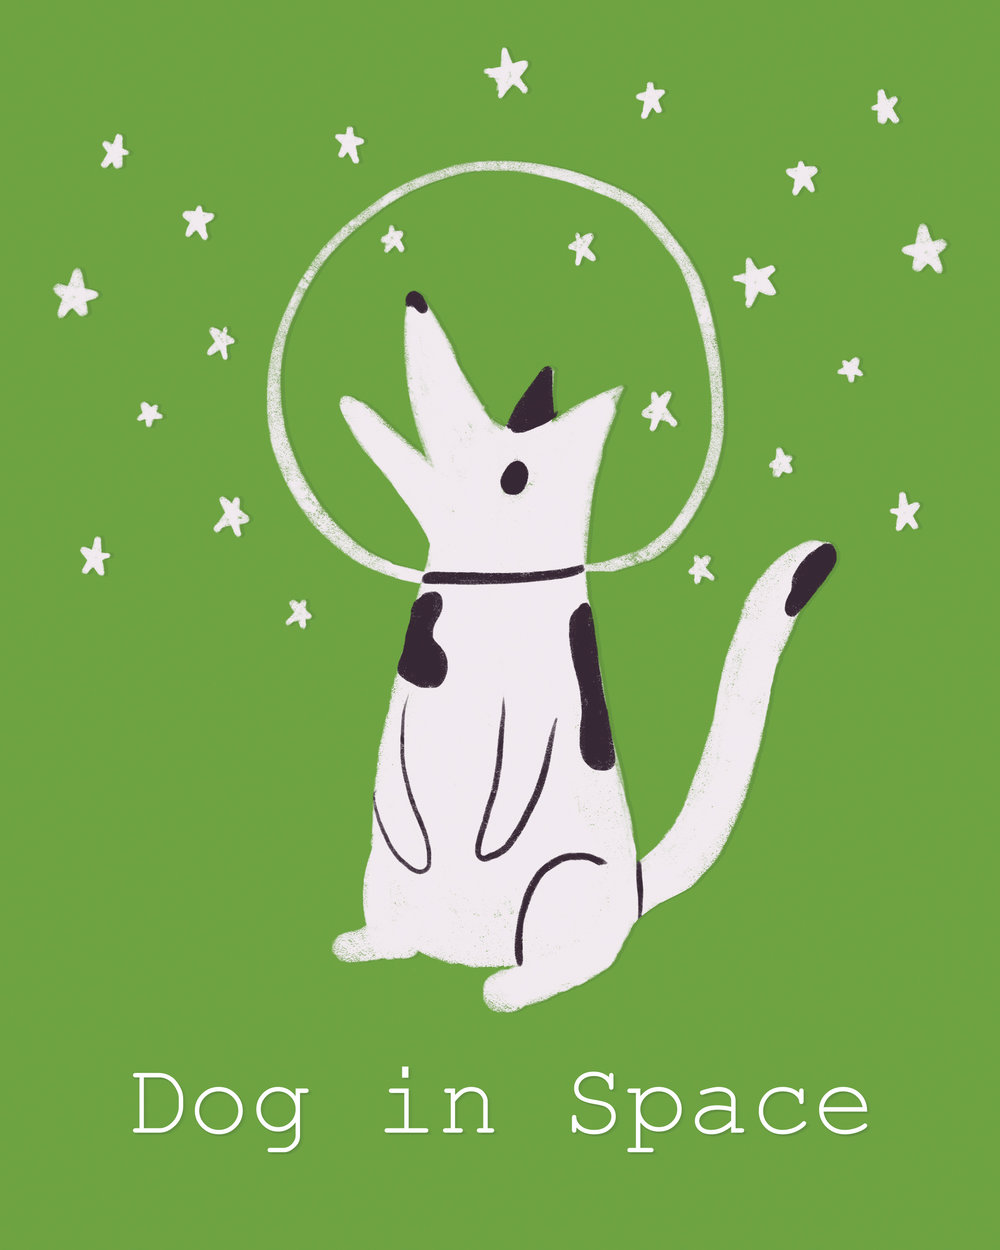 Dog in Space green 72.jpg